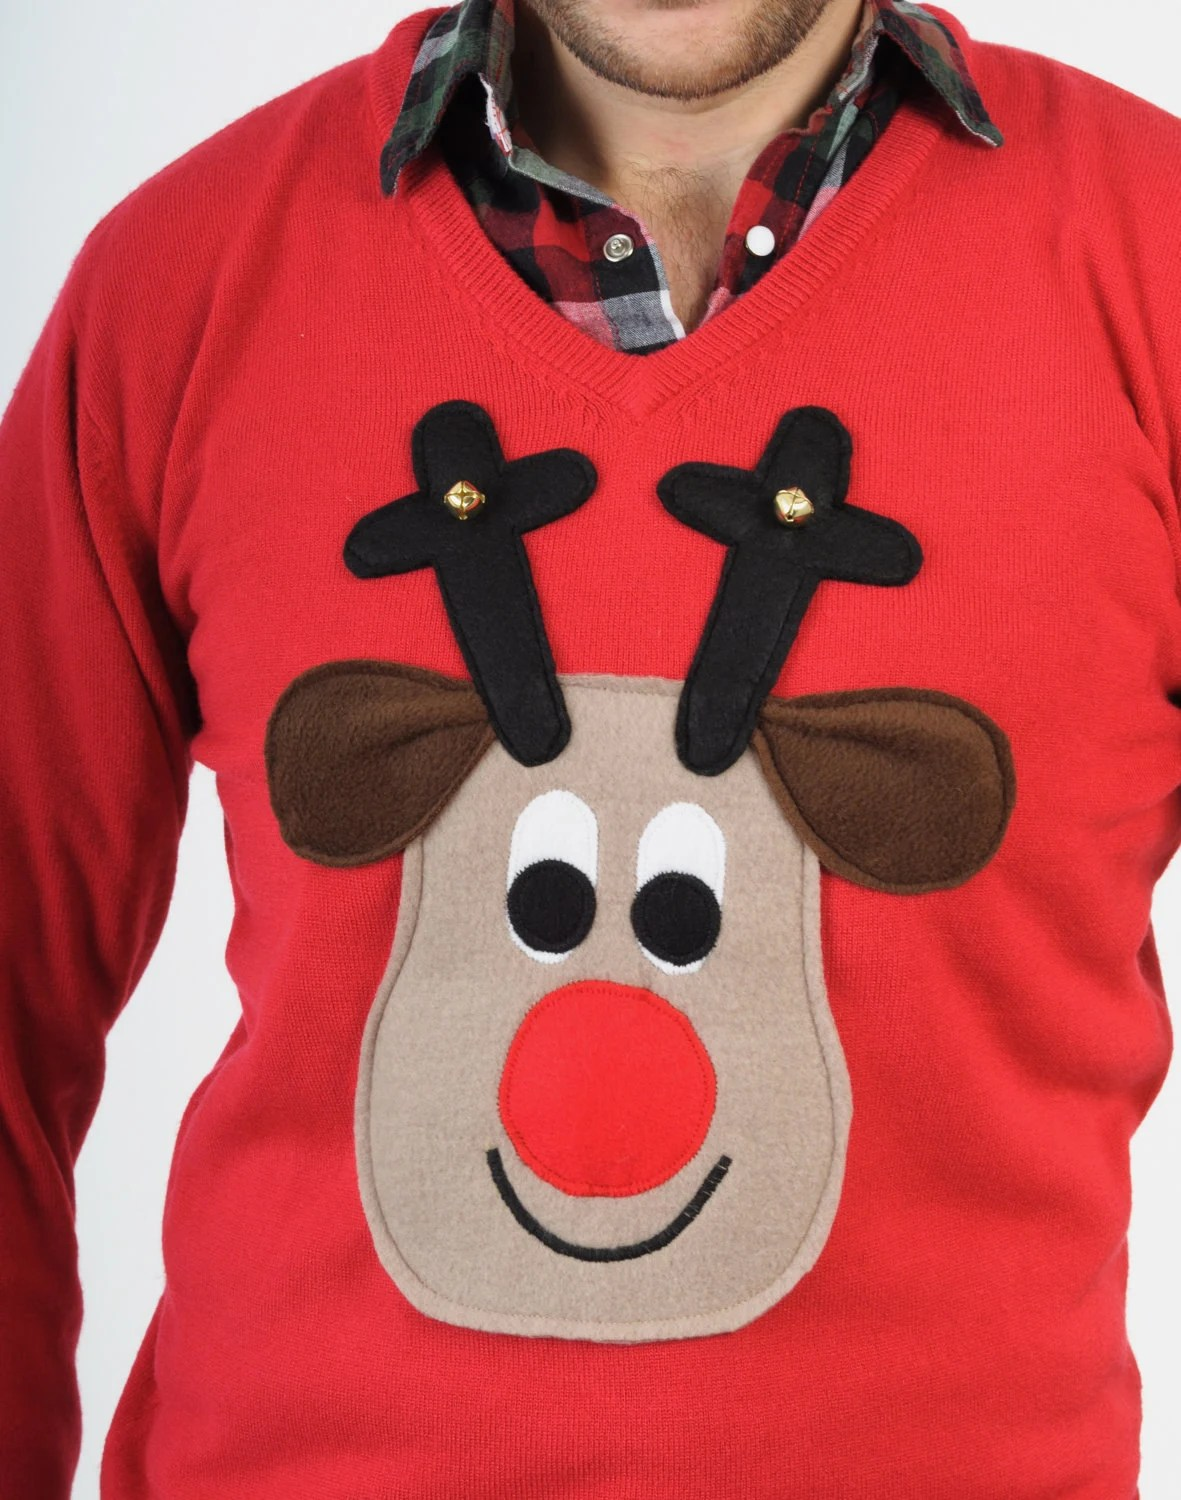 Rudolph Reindeer Christmas Sweater with squeaker behind his nose and bells on his antlers